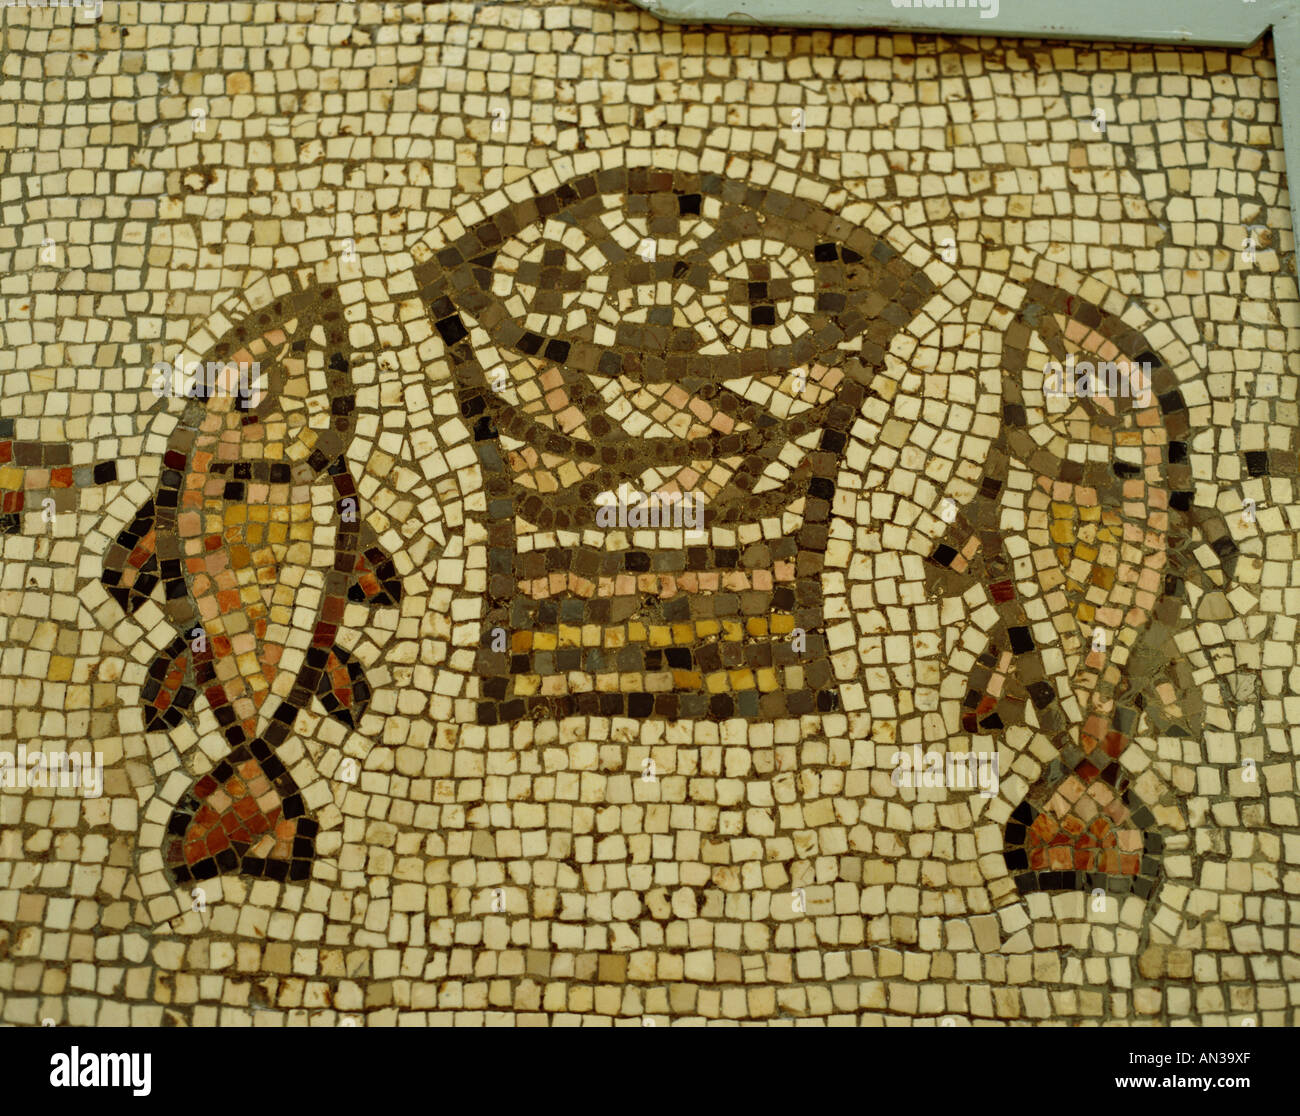 Church Of The Multiplication Mosaic Of The Loaves And